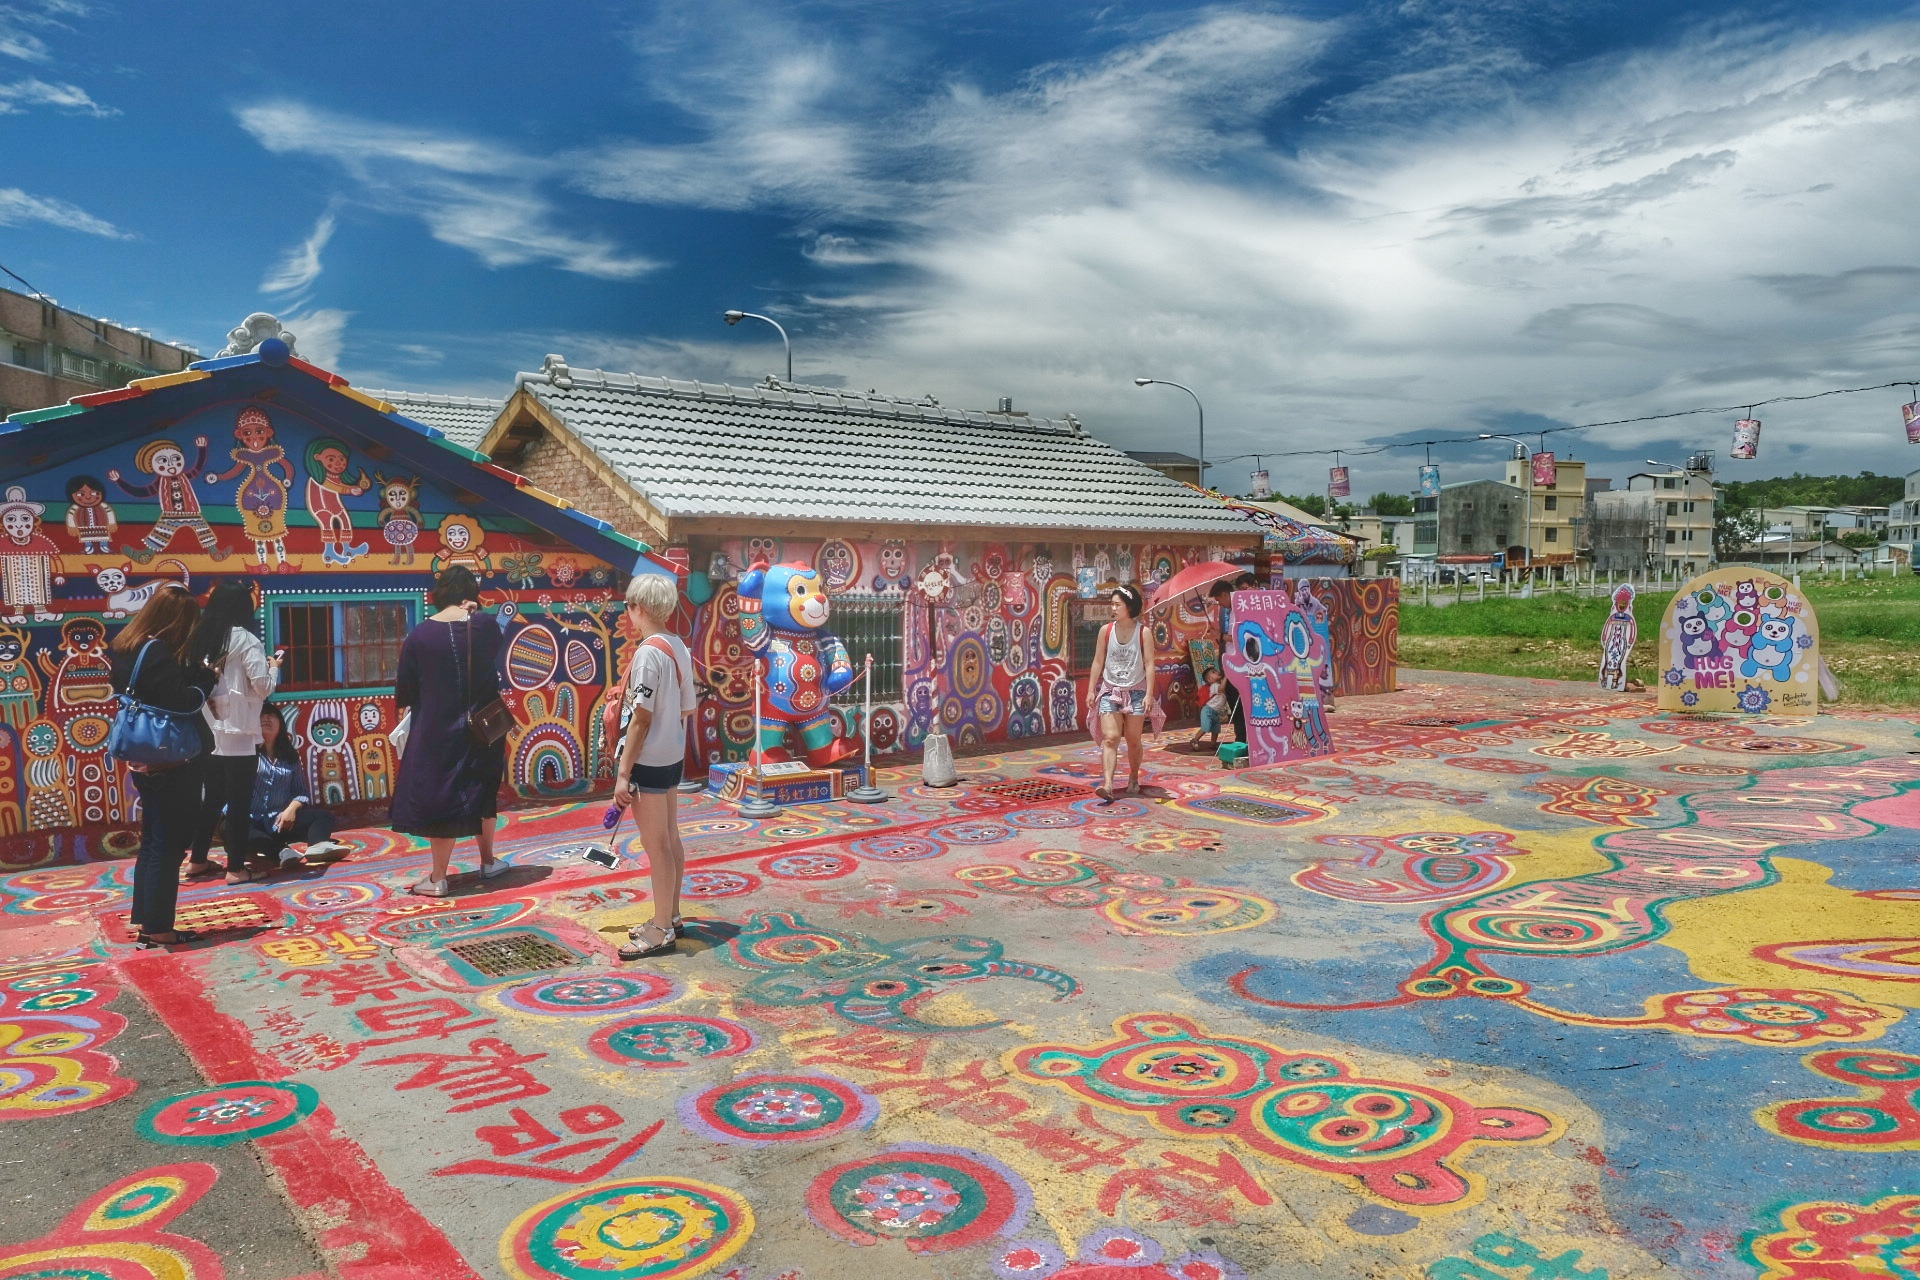 The Rainbow Village.